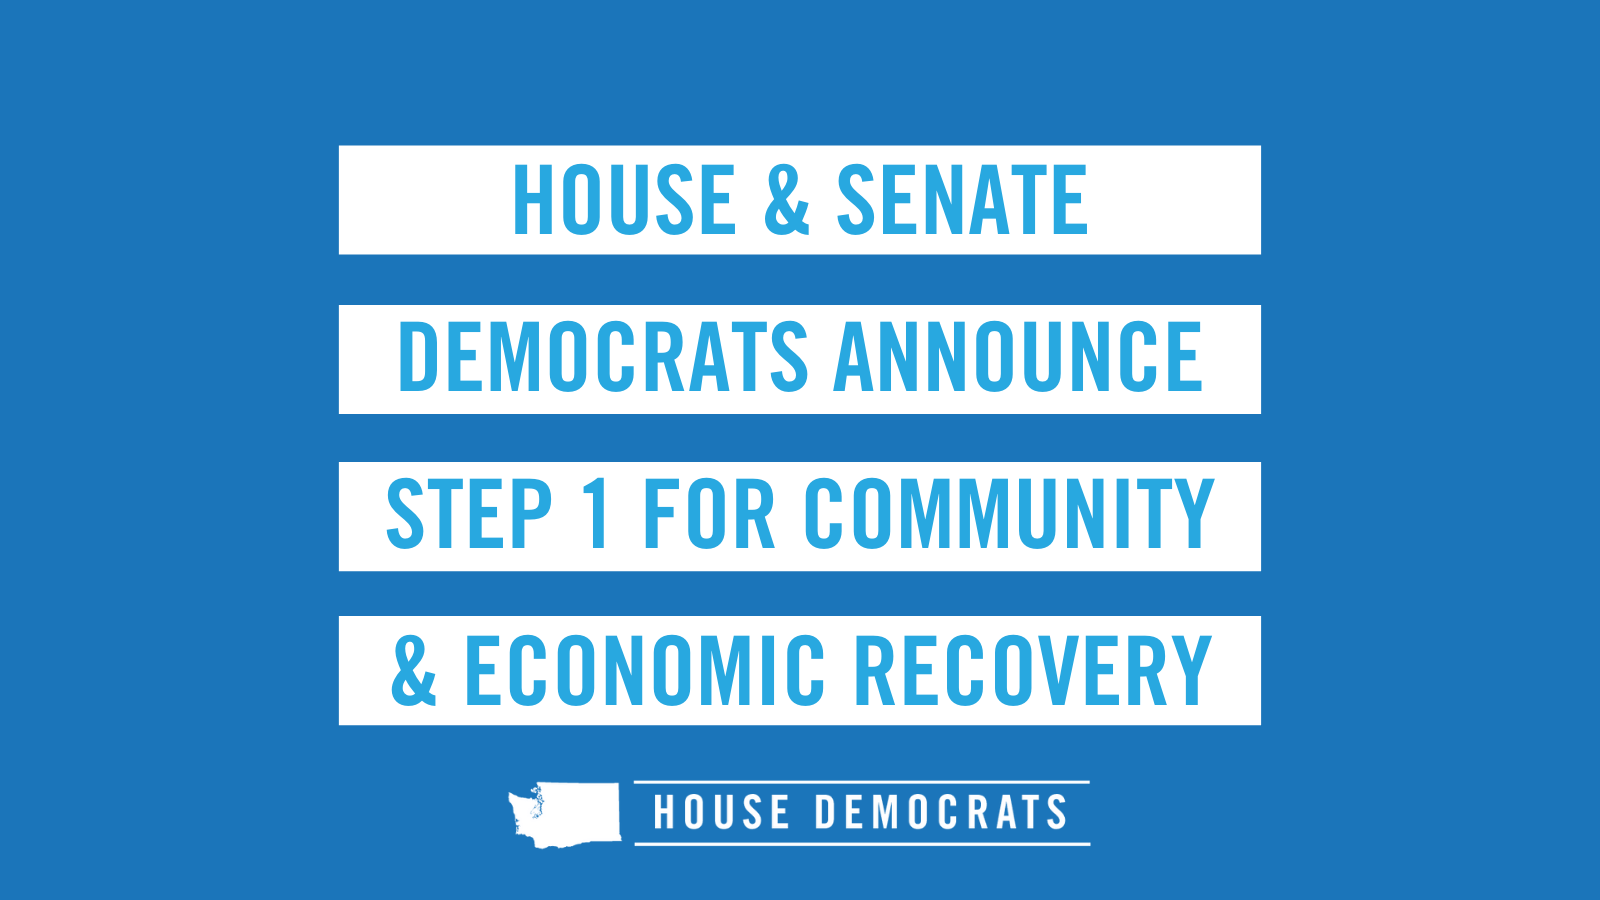 Opening slide that says House & Senate Democrats Announce Step 1 for Community & Economic Recovery